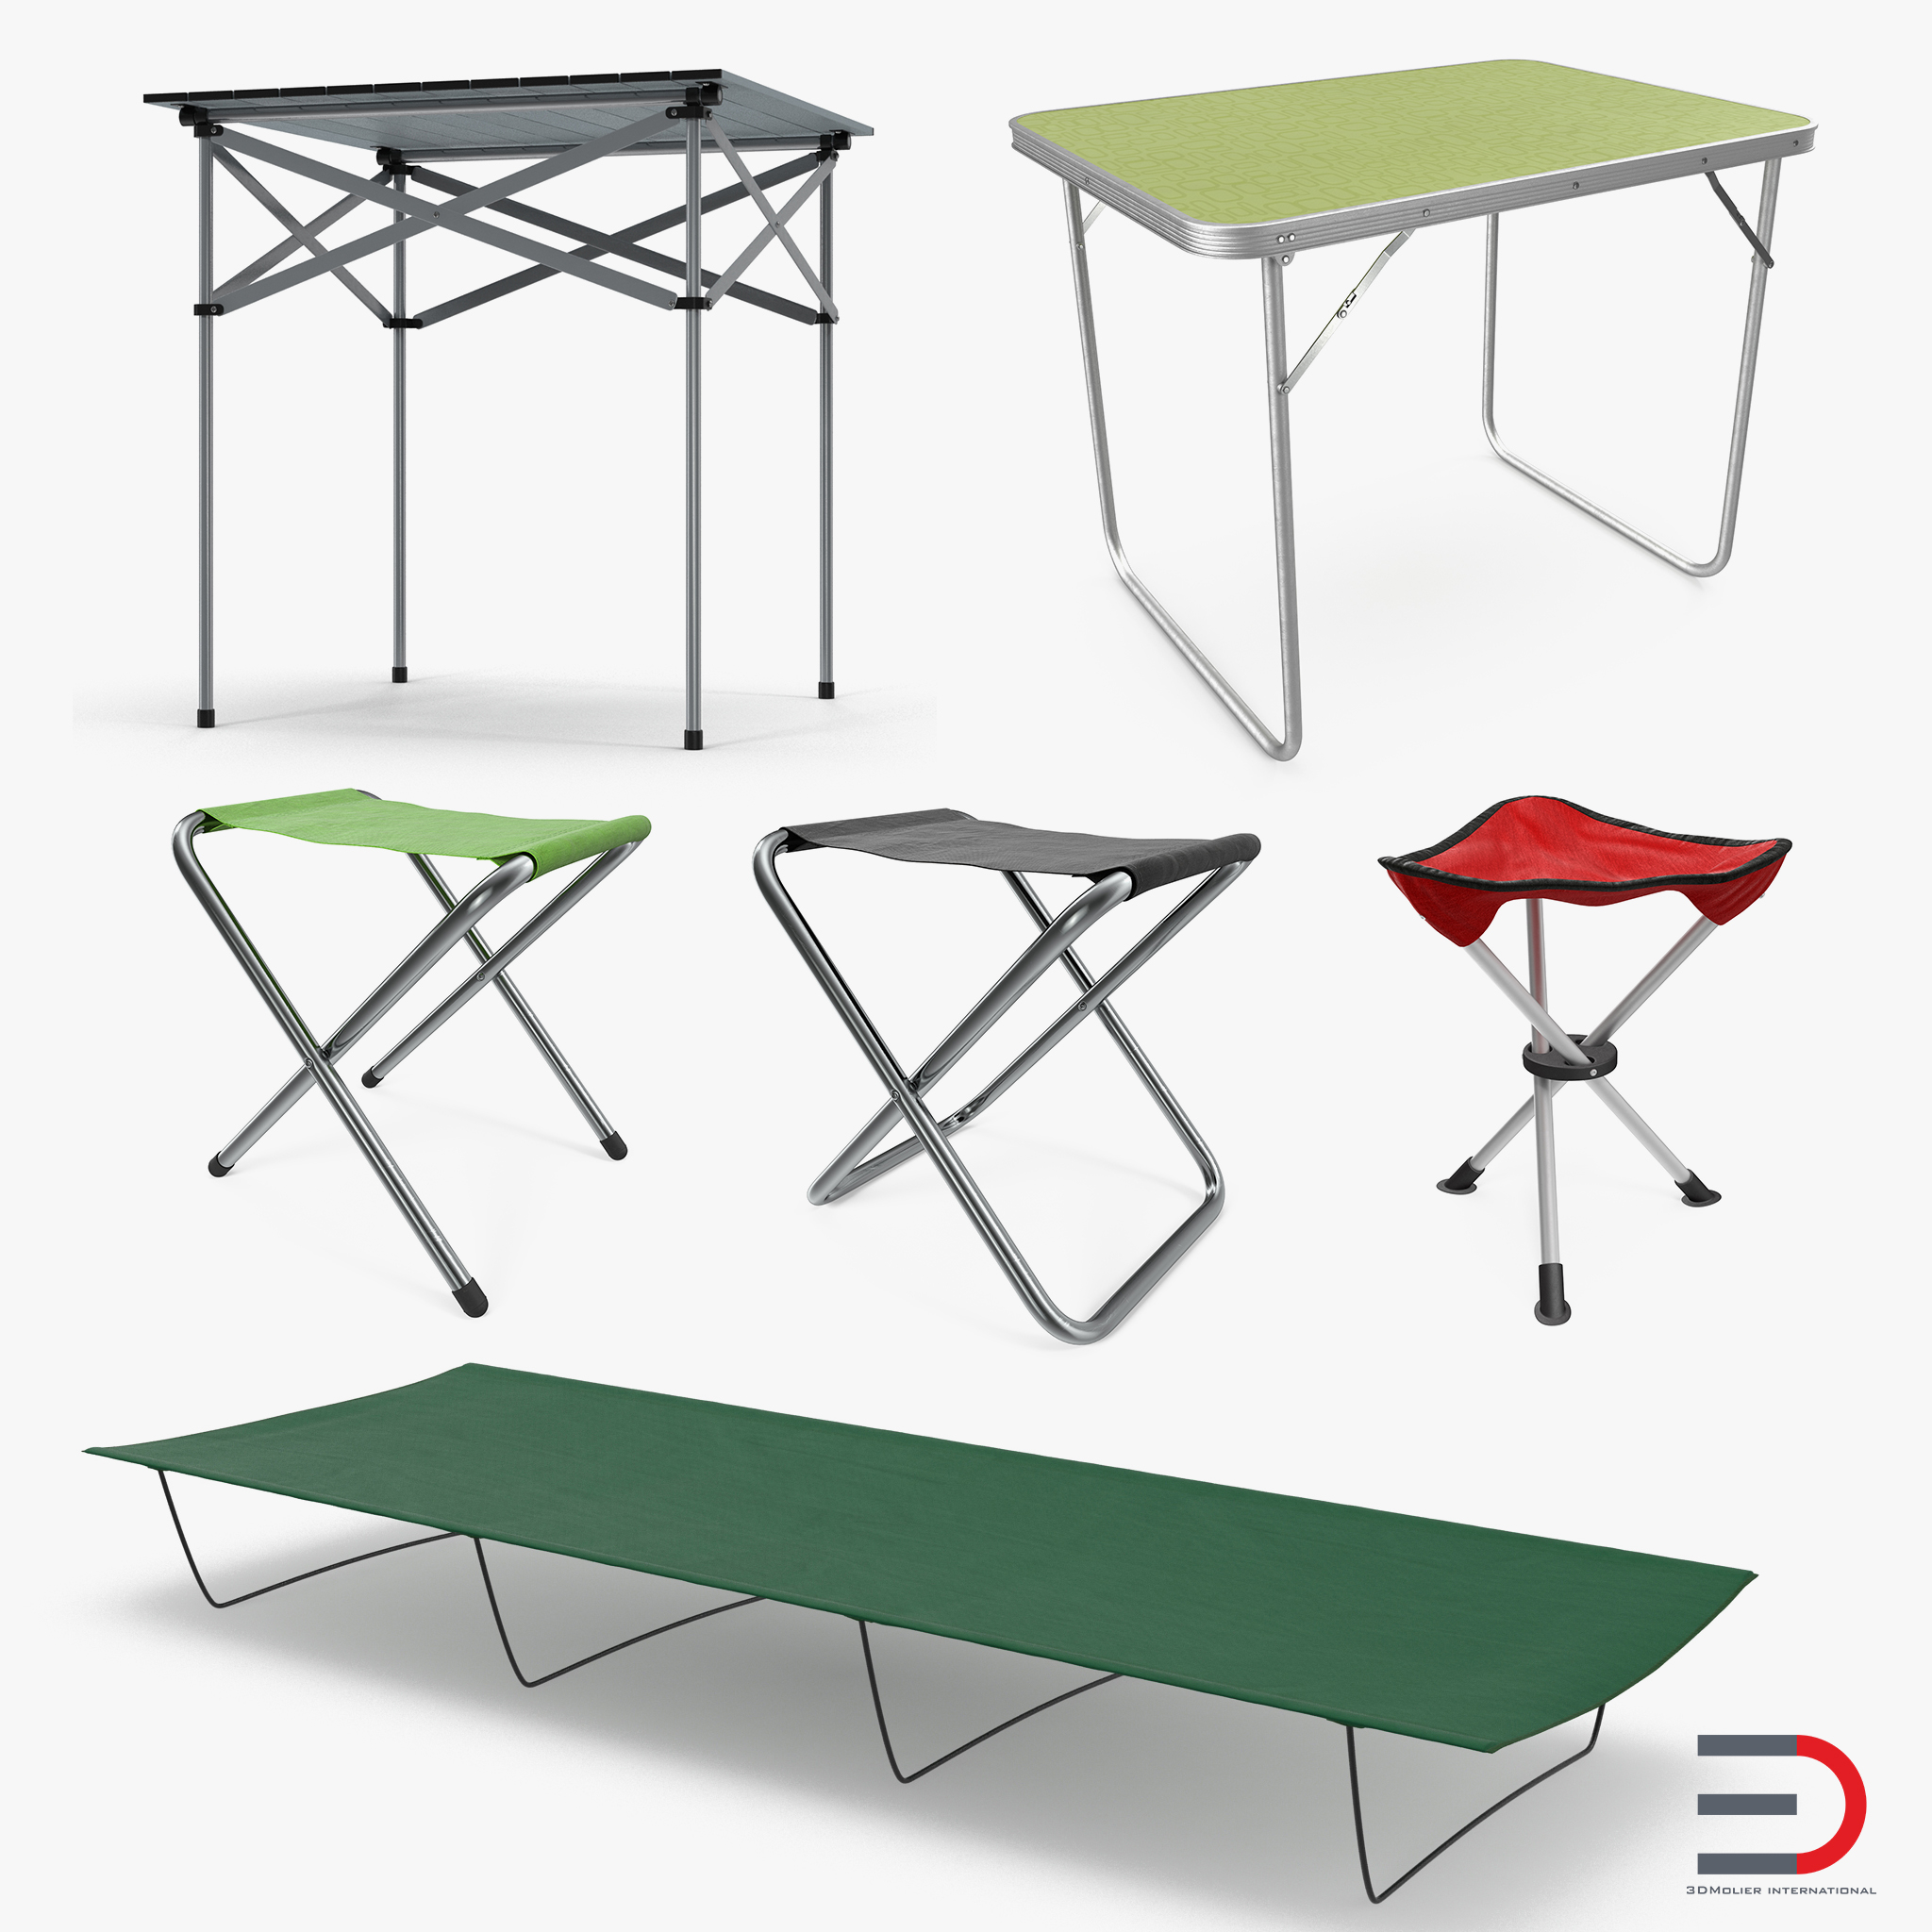 Camping Table And Chairs.Camping Table And Chairs Collection